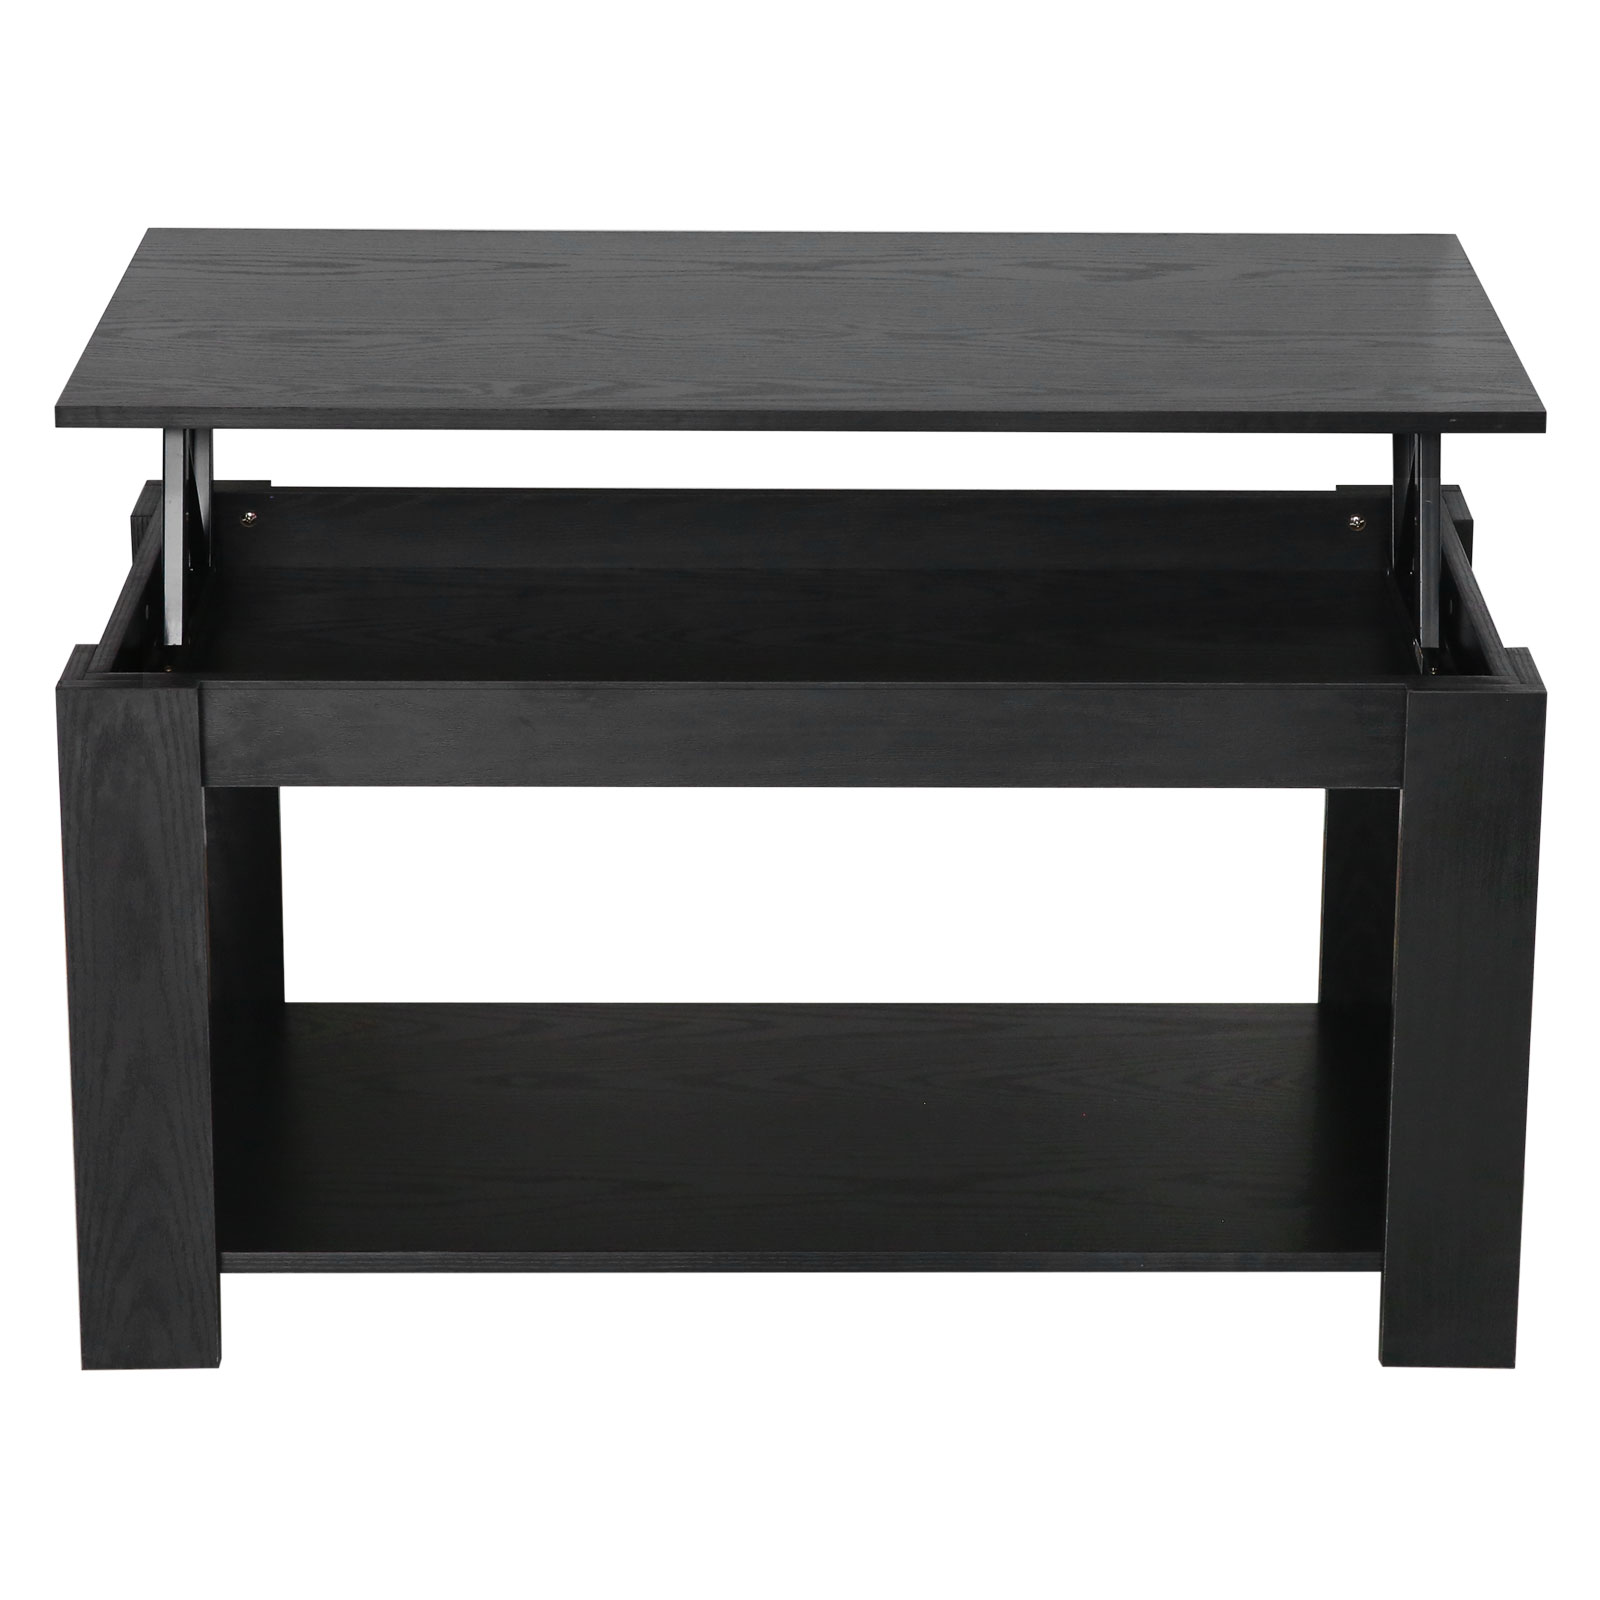 Black Coffee Table With Storage Uk: Lift Up Top Coffee Table Living Room Metal Hinge Wood